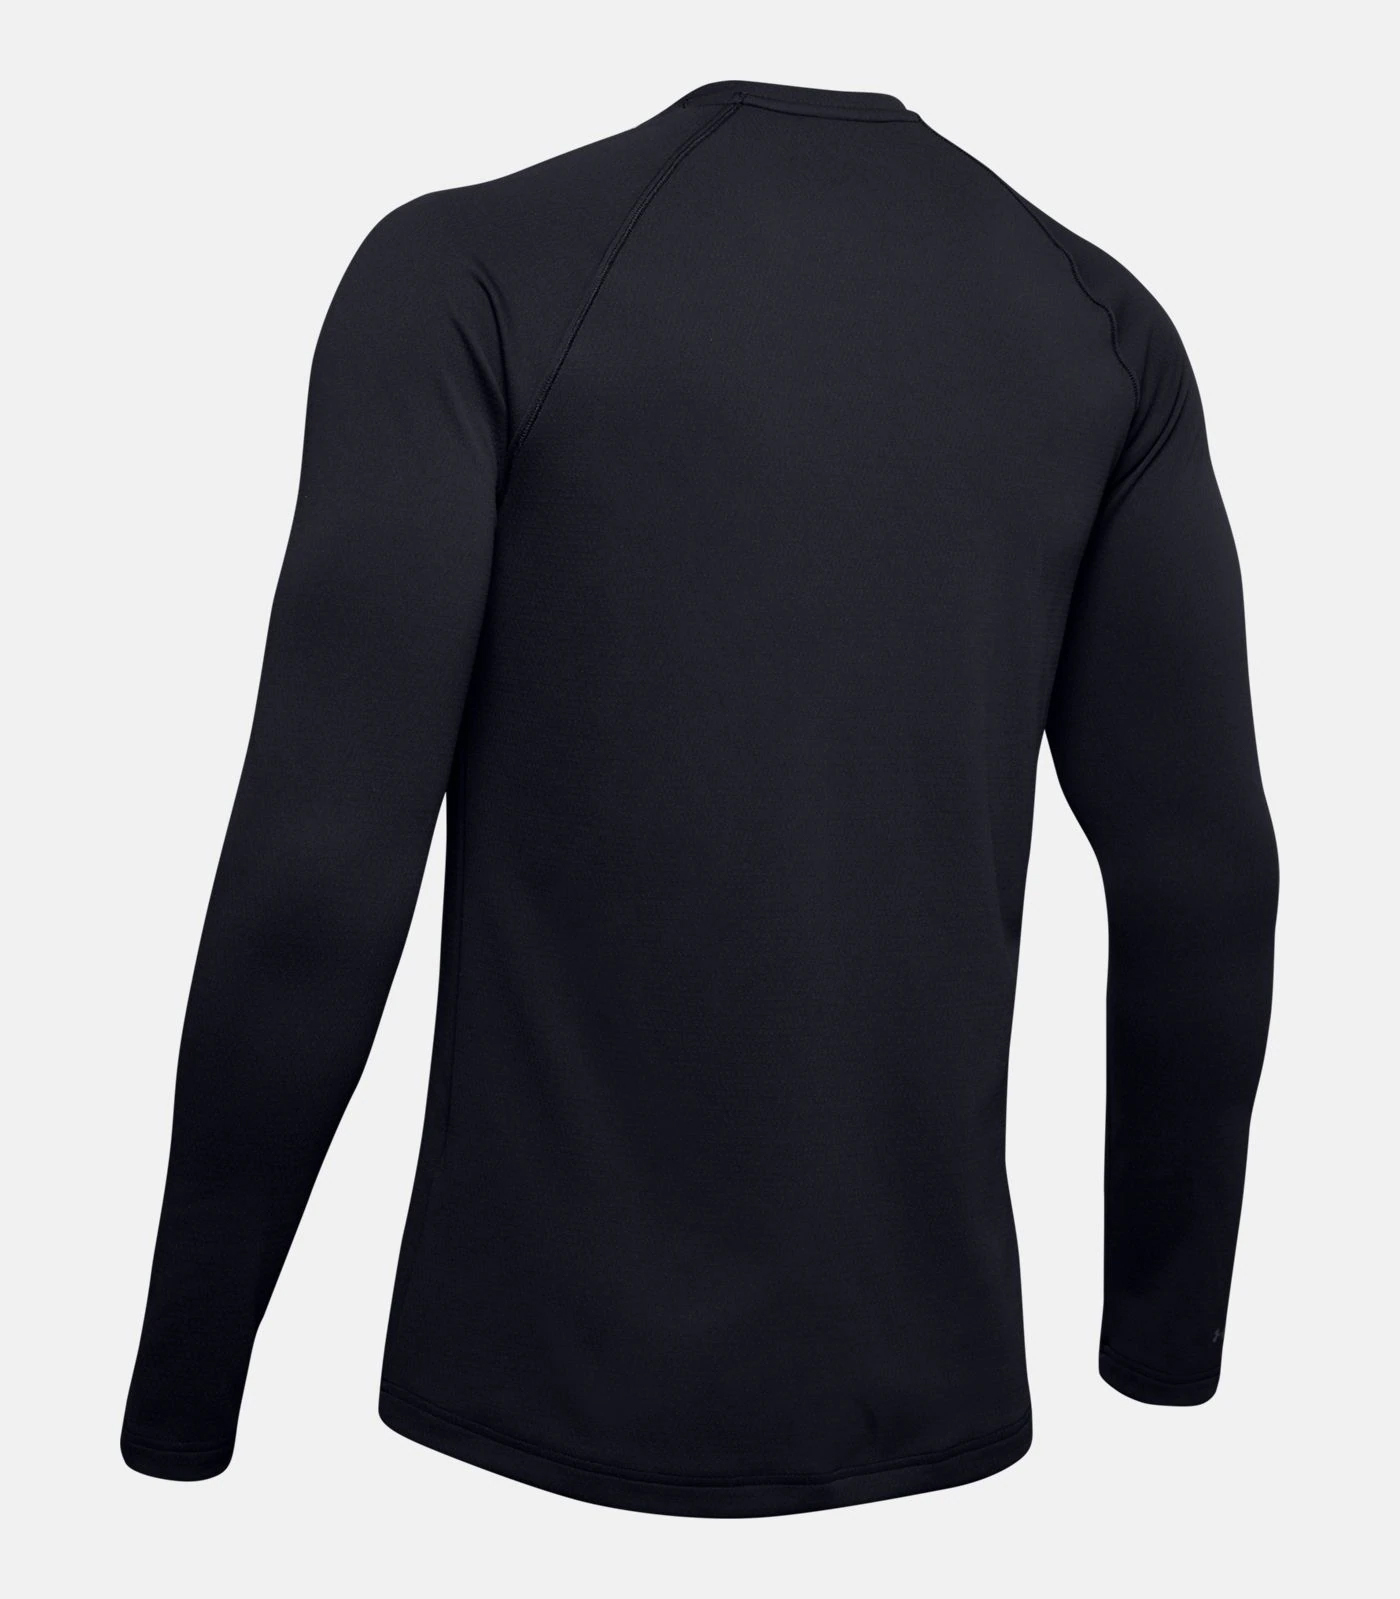 MENS_BASE-LAYERS-2_LS_UAR1343244001_05